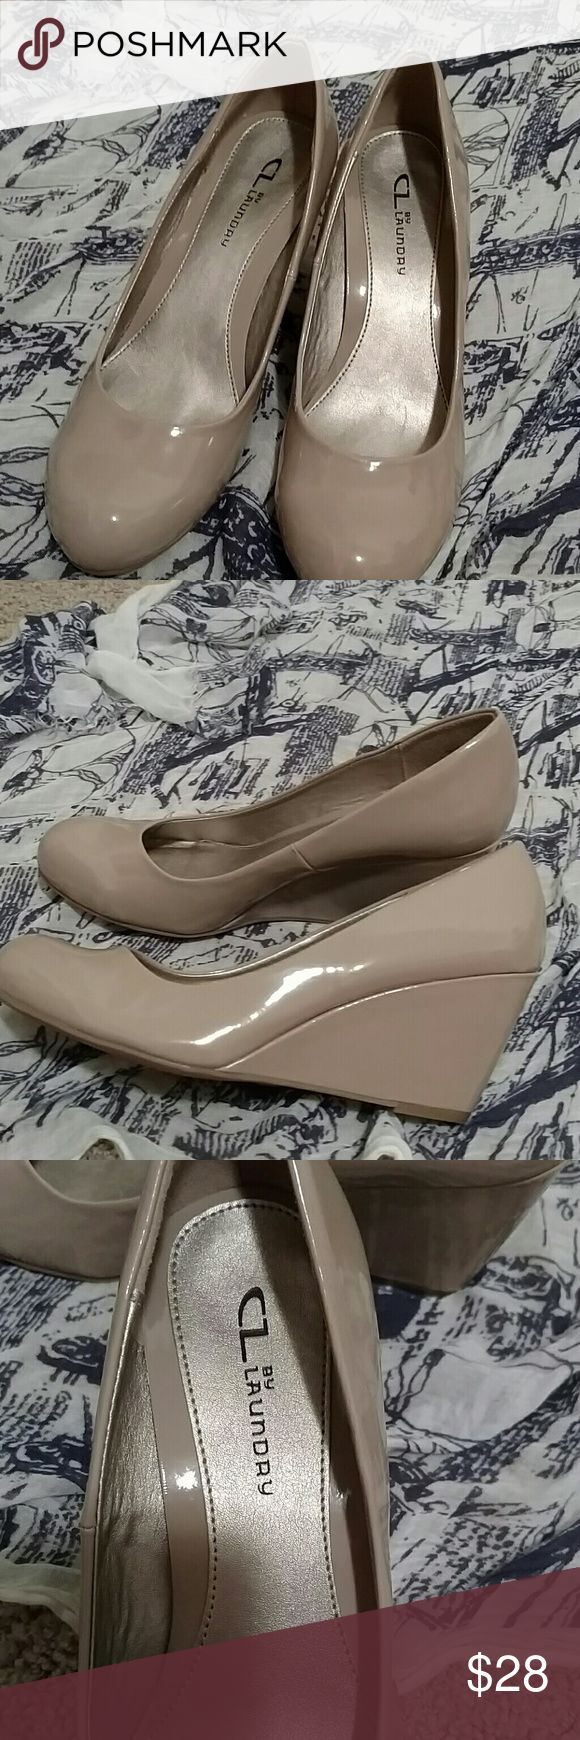 Chinese laundry pumps size 9.5 In almost new condition, there are some minor marks and scuffs and a faint X mark on soles but soles are near perfect. Size 9.5 Chinese Laundry Shoes